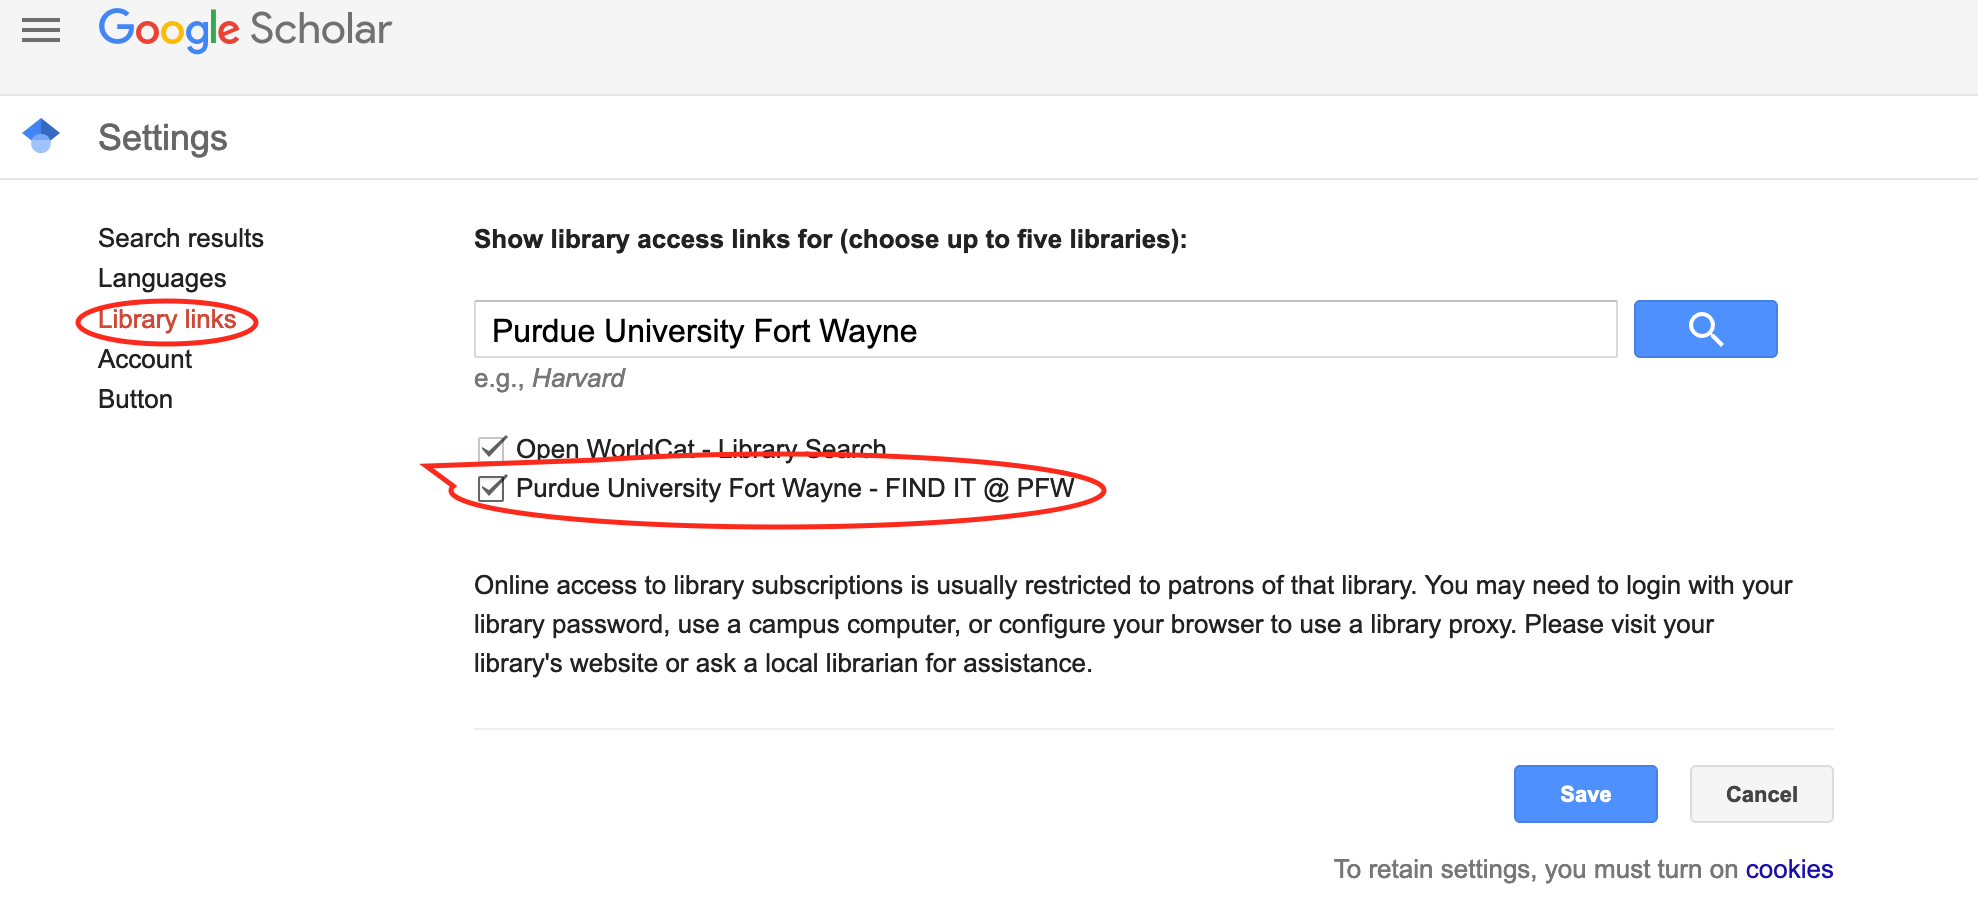 Settings menu for Google Scholar, library links option, with Purdue University Fort Wayne searched and selected